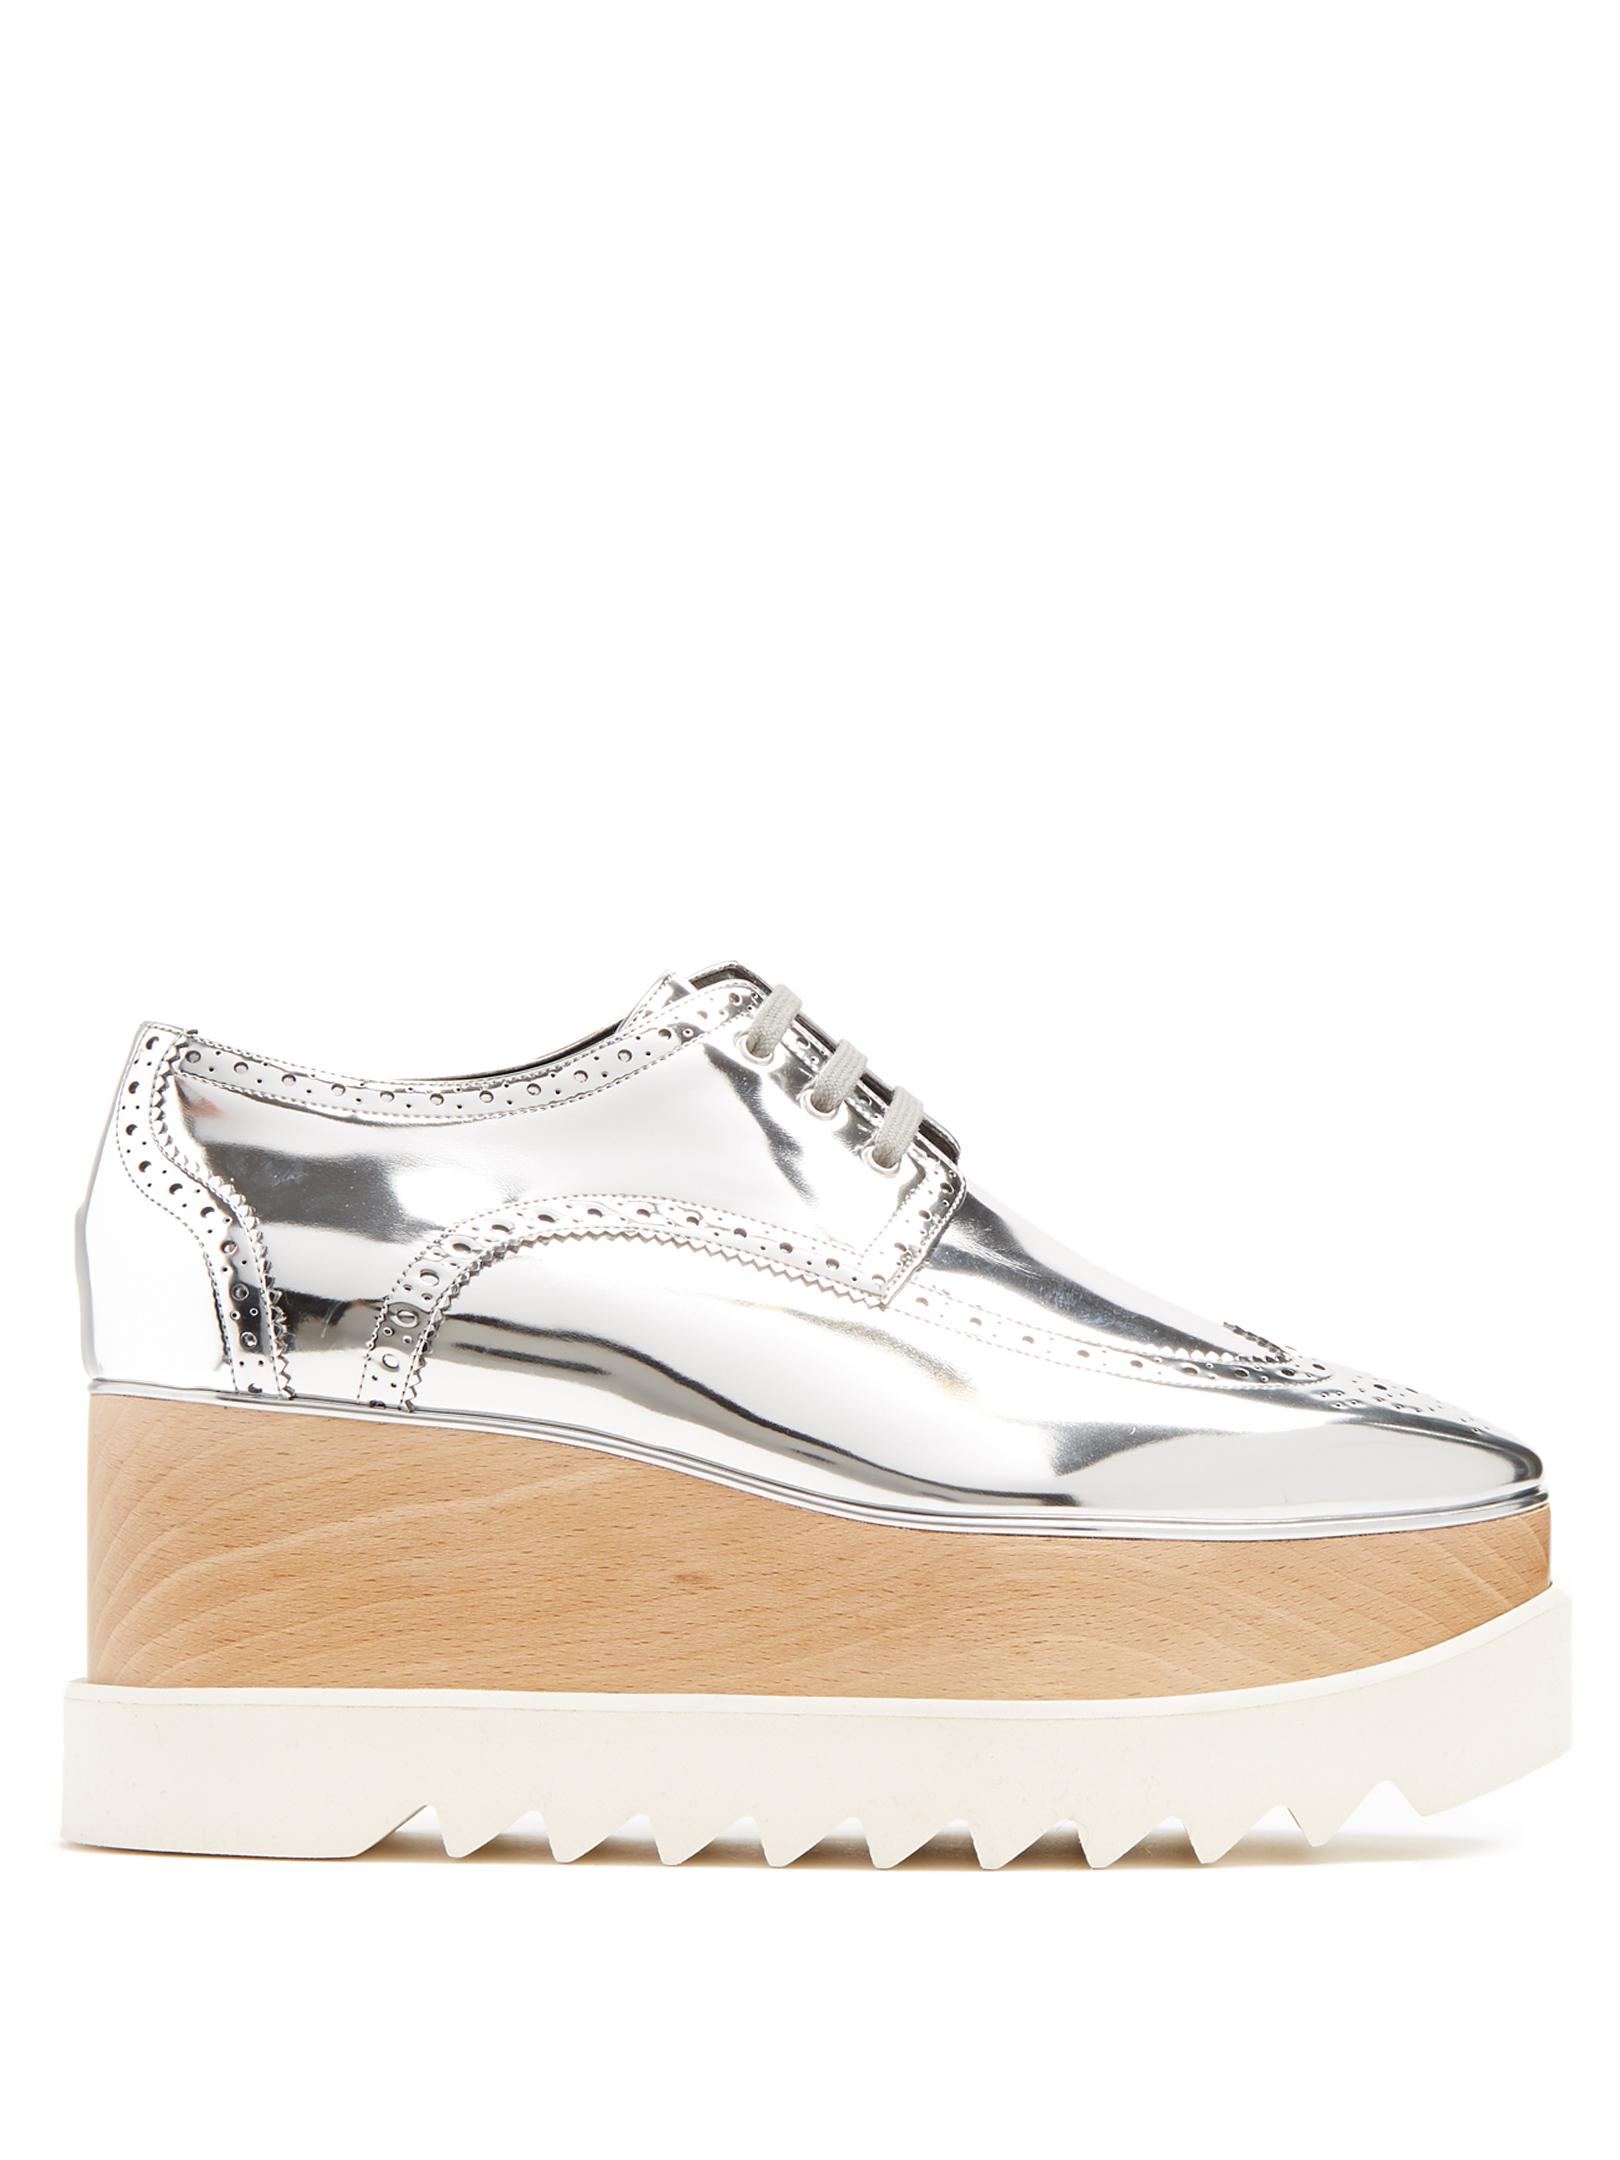 dac819a7ca9a Lyst - Stella McCartney Elyse Lace-up Faux-leather Platform Shoes in ...